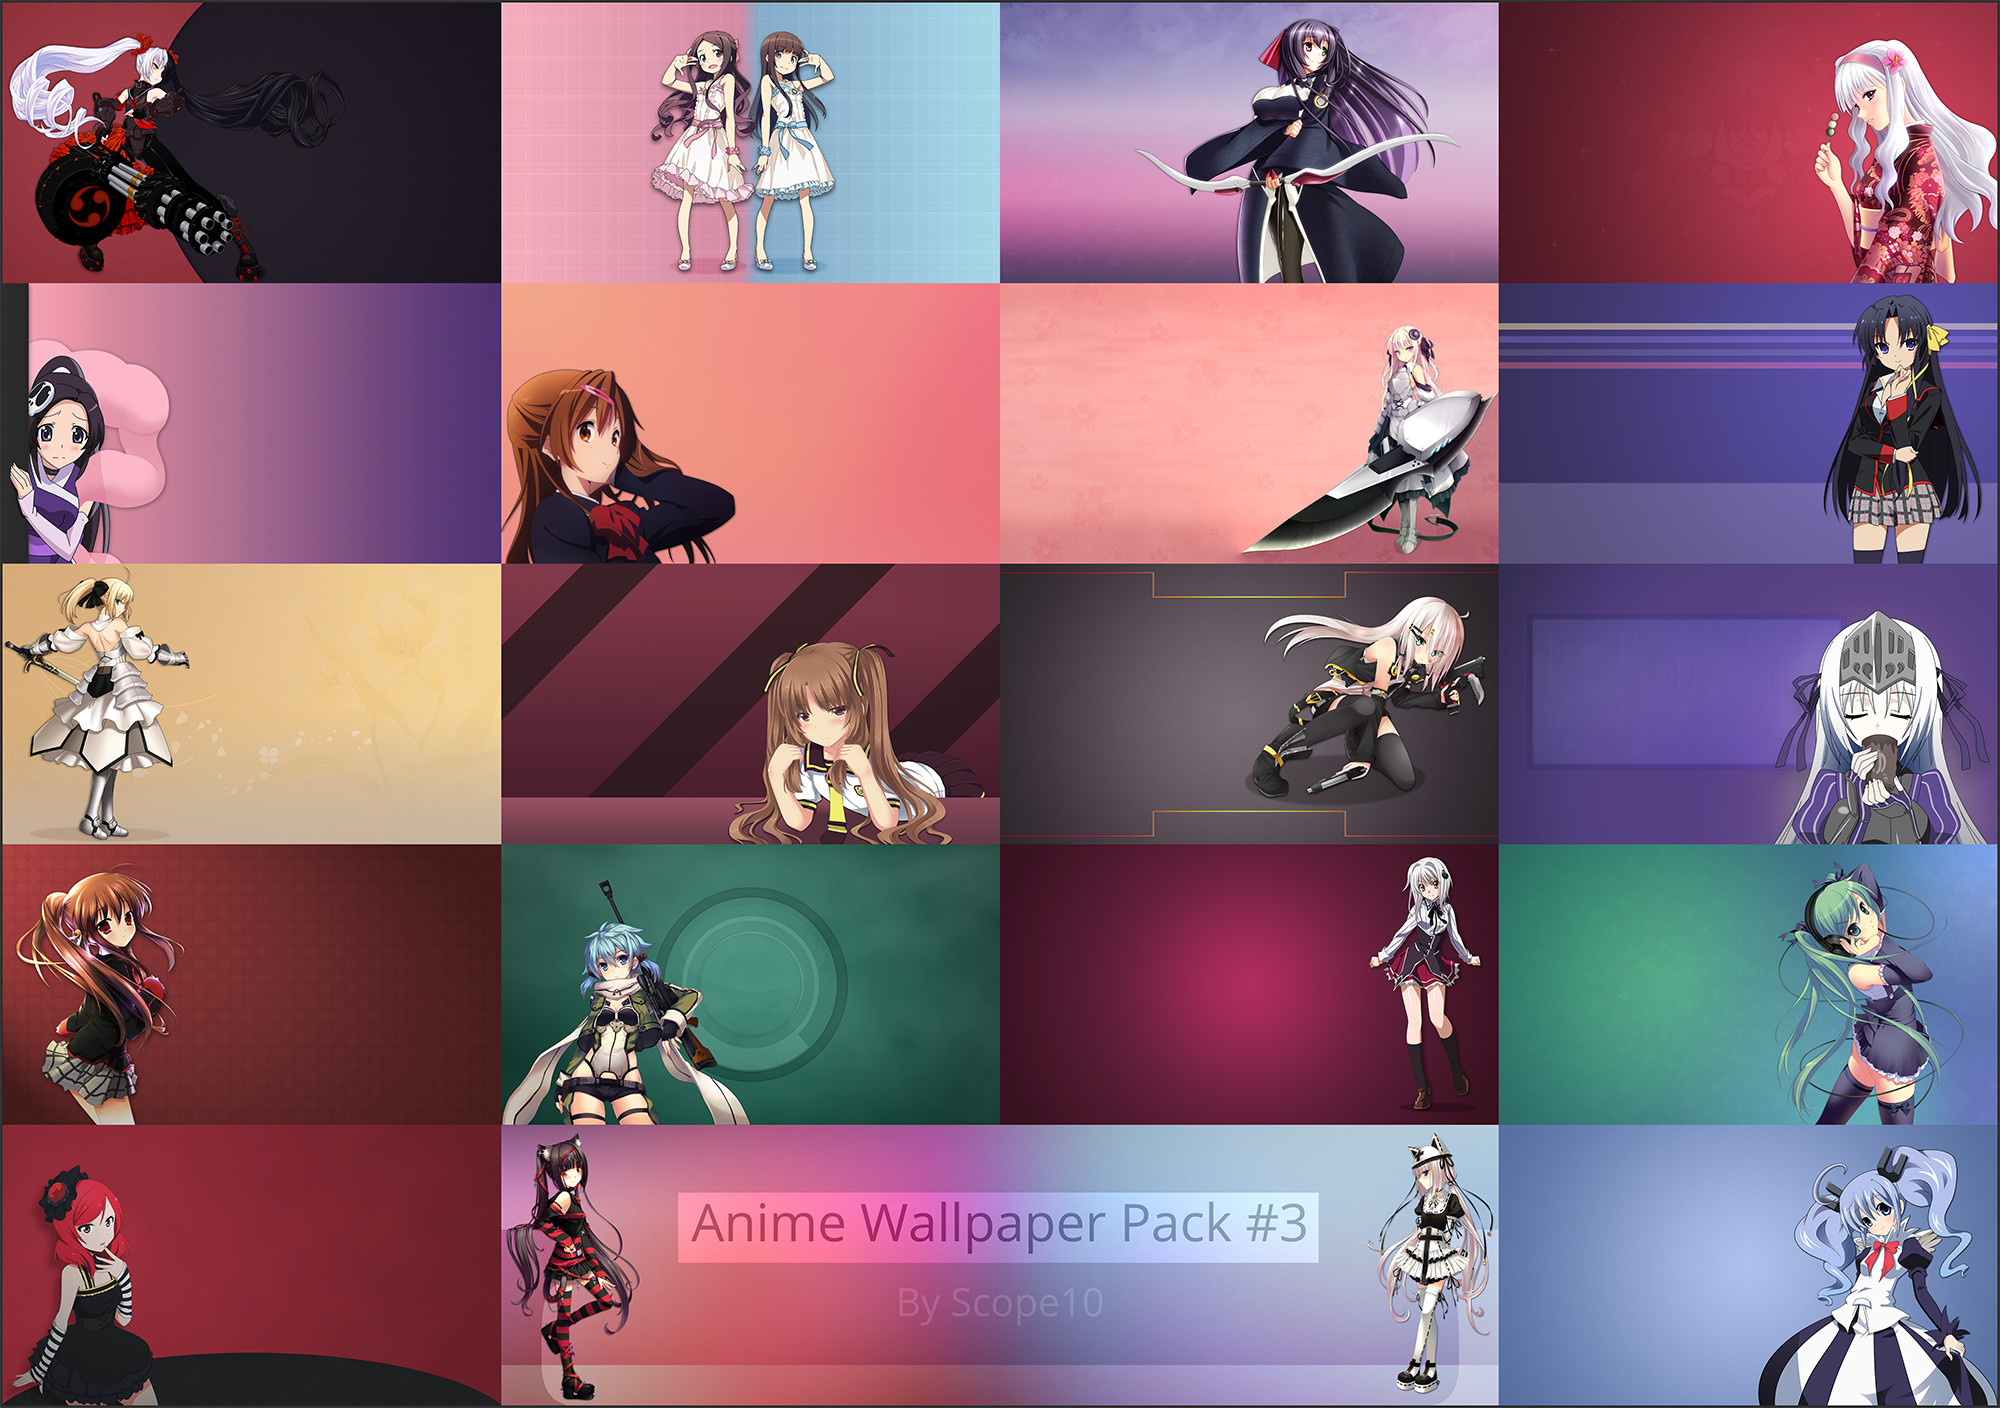 2000x1408 ... Anime Wallpaper Pack #3 by Scope10